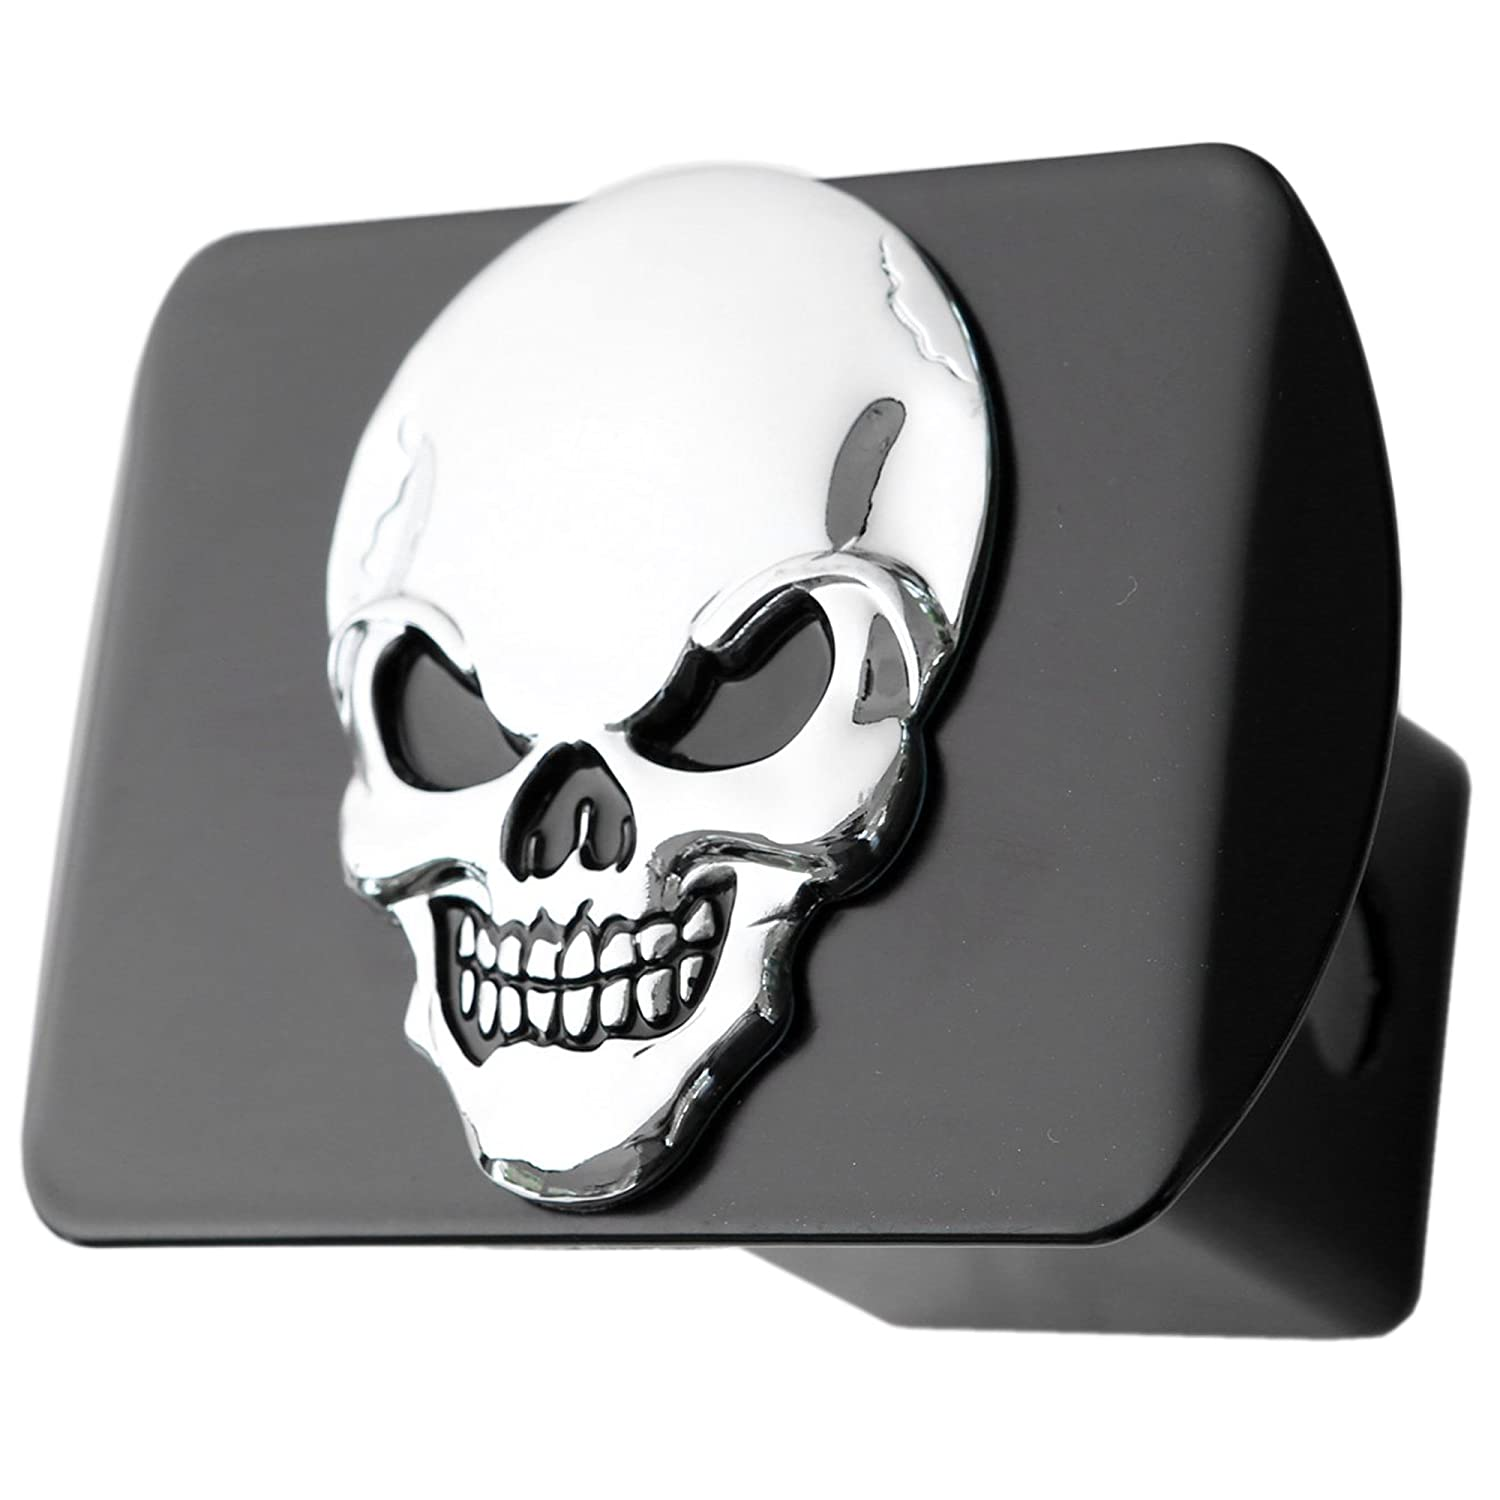 Black on Black LFPartS 100/% Metal Skull 3D Emblem Trailer Hitch Cover Fits 2 Receivers bparts